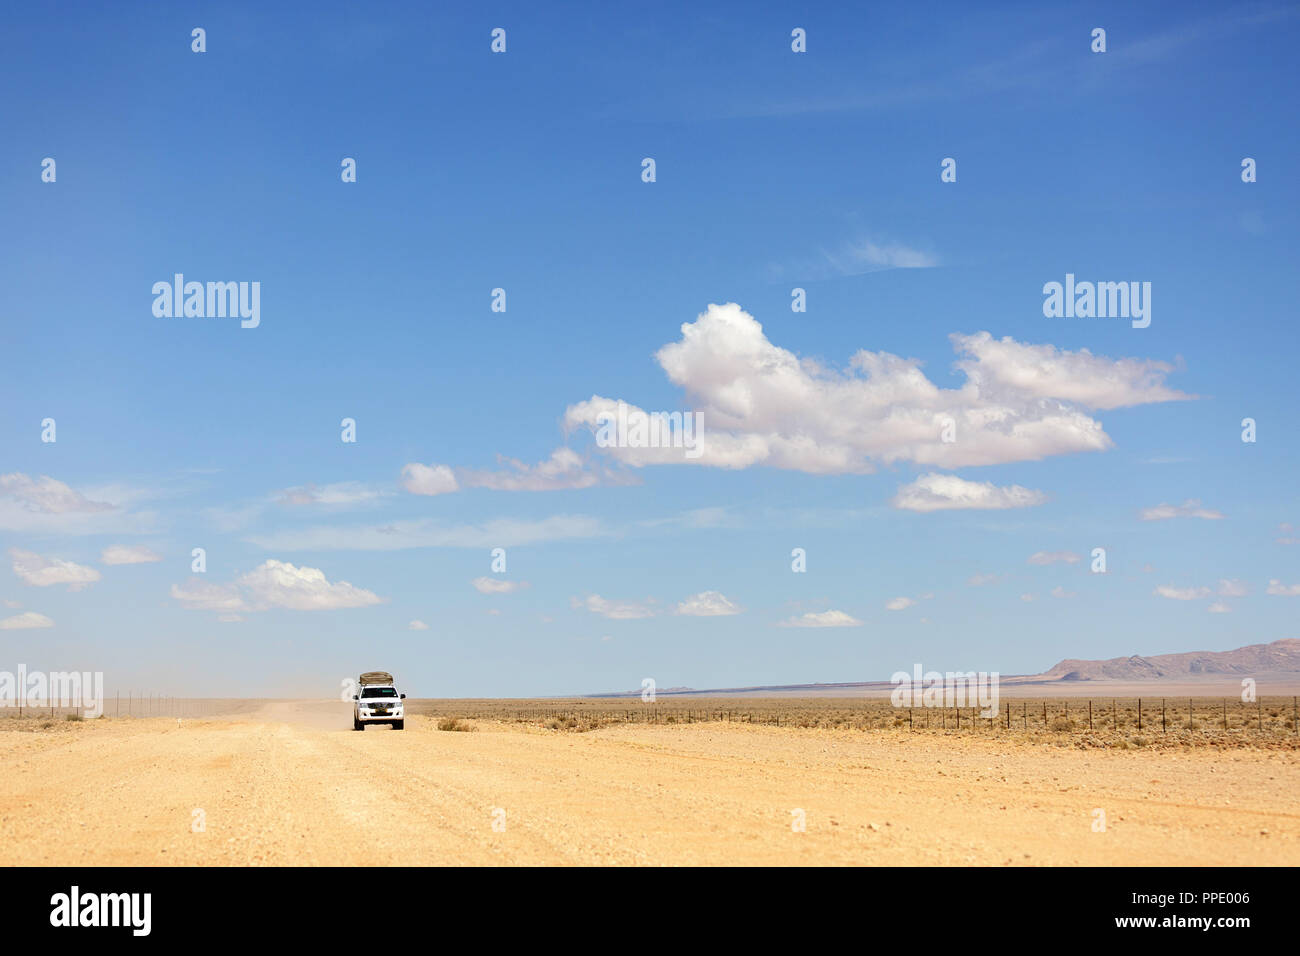 how to drive in the sand 4x4